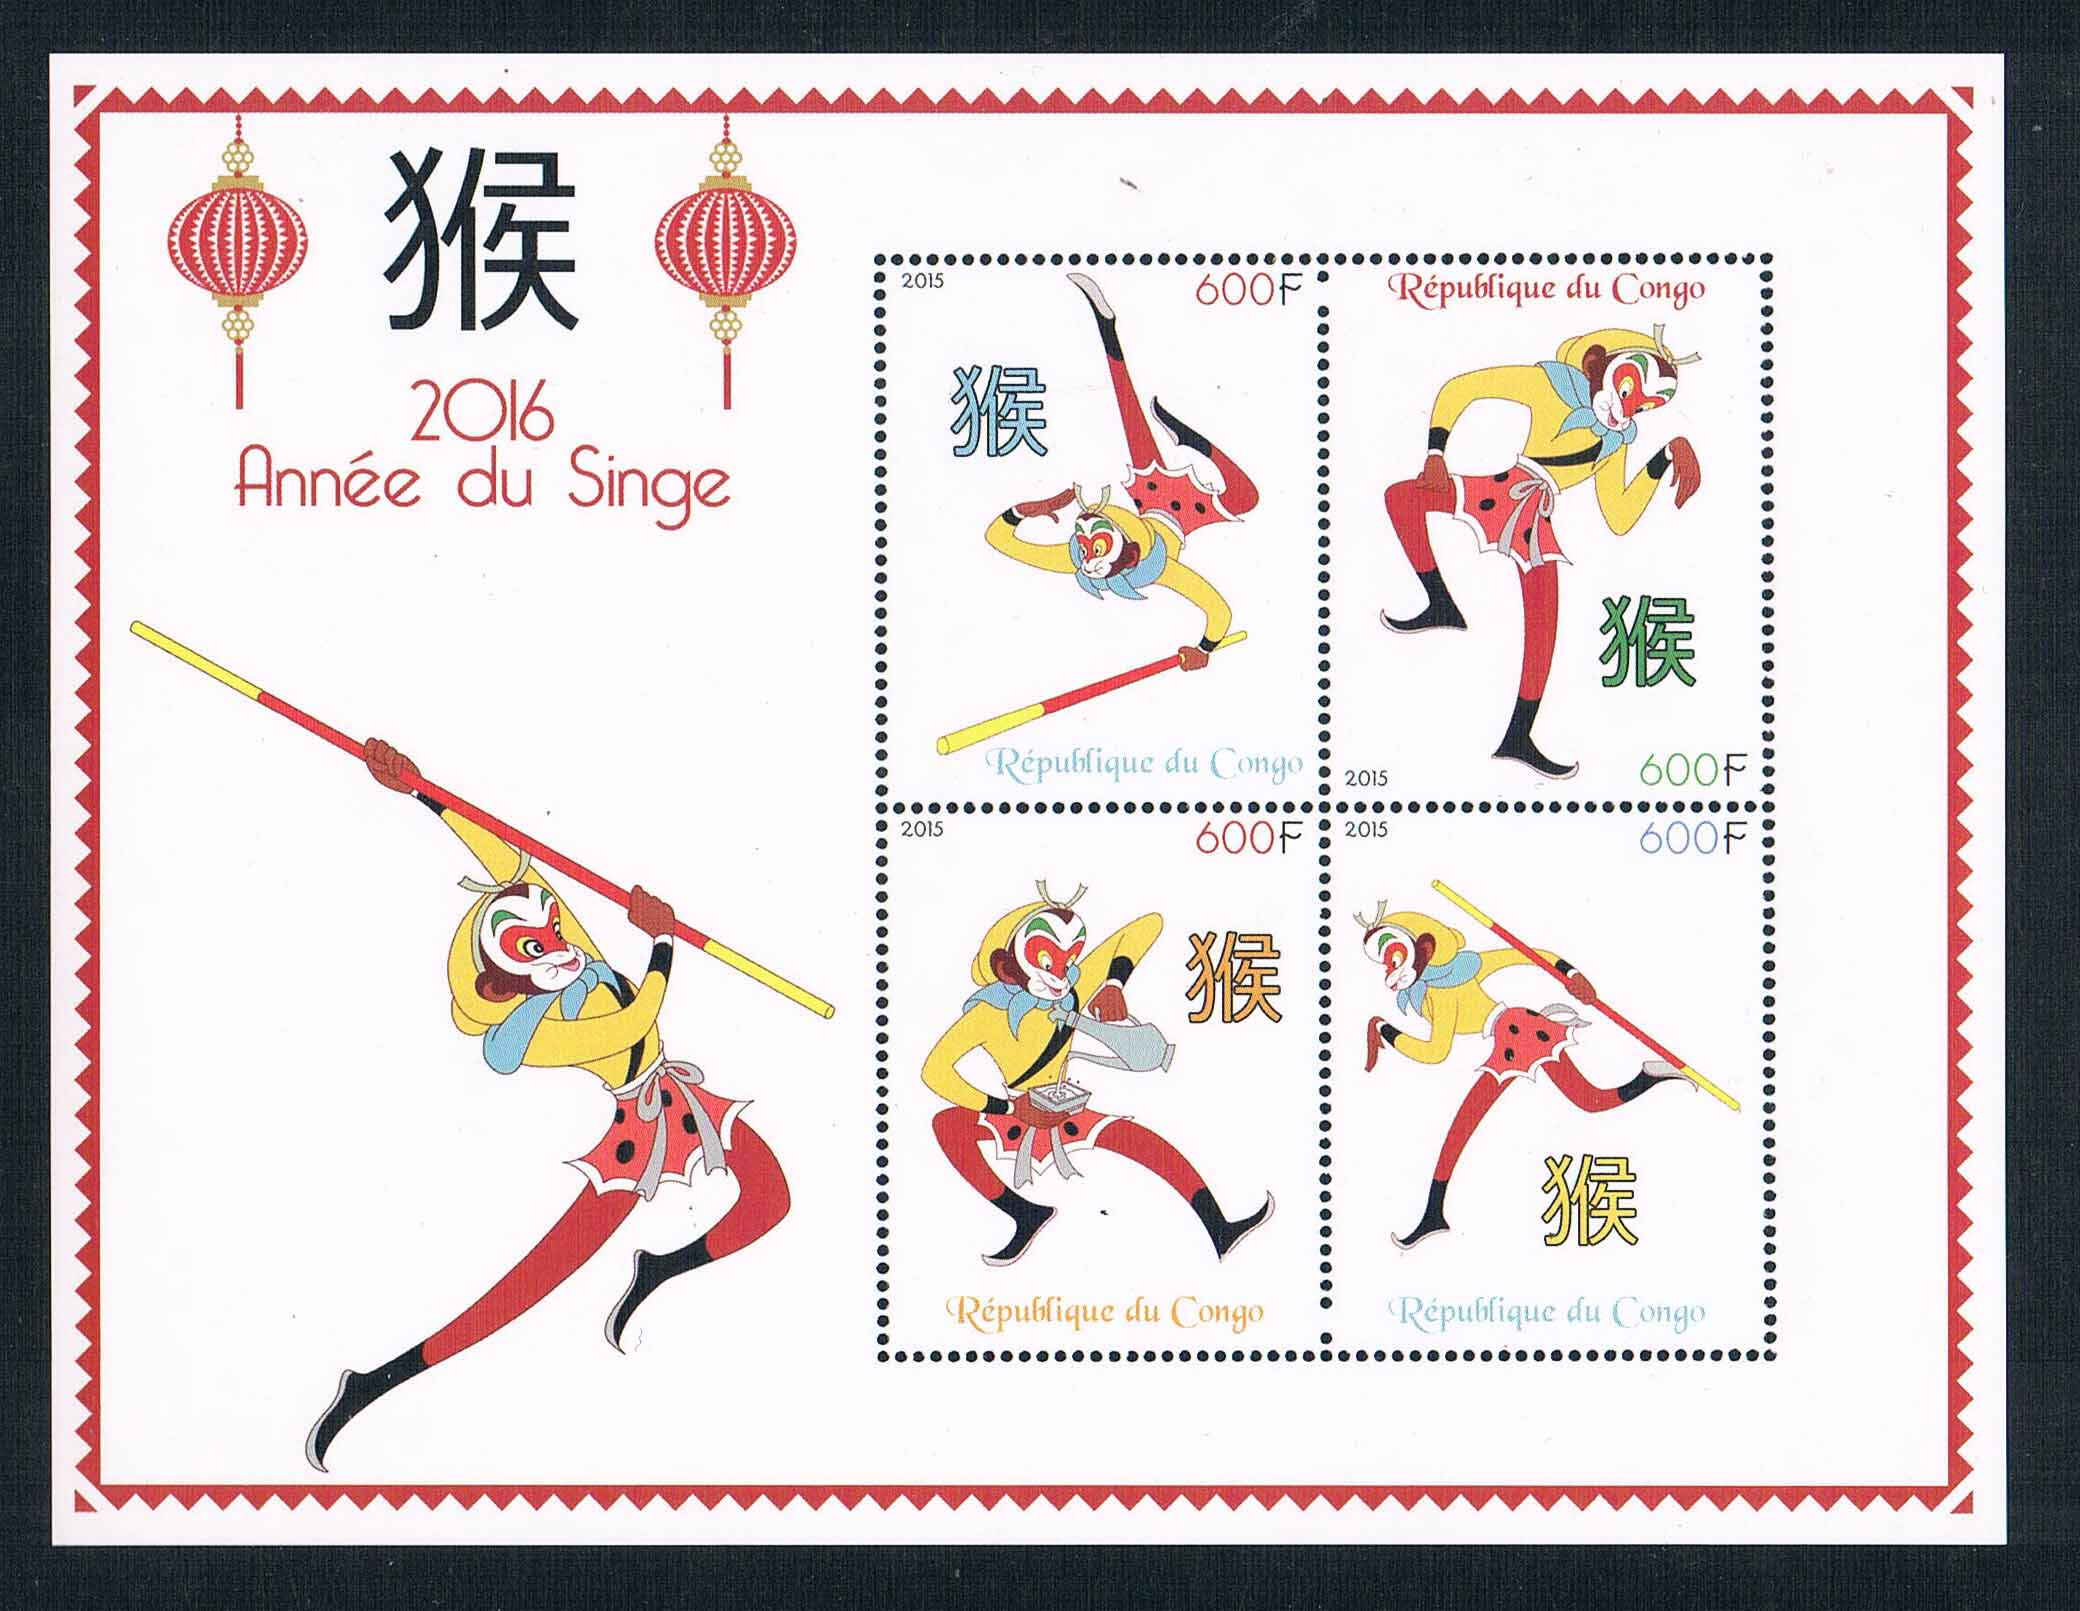 CX0554 Congo 2015 China bingshen year Sun Wukong Zodiac stamps 1MS new 0921 te0192 garner 2005 international year of physics einstein 5 new stamps 0405